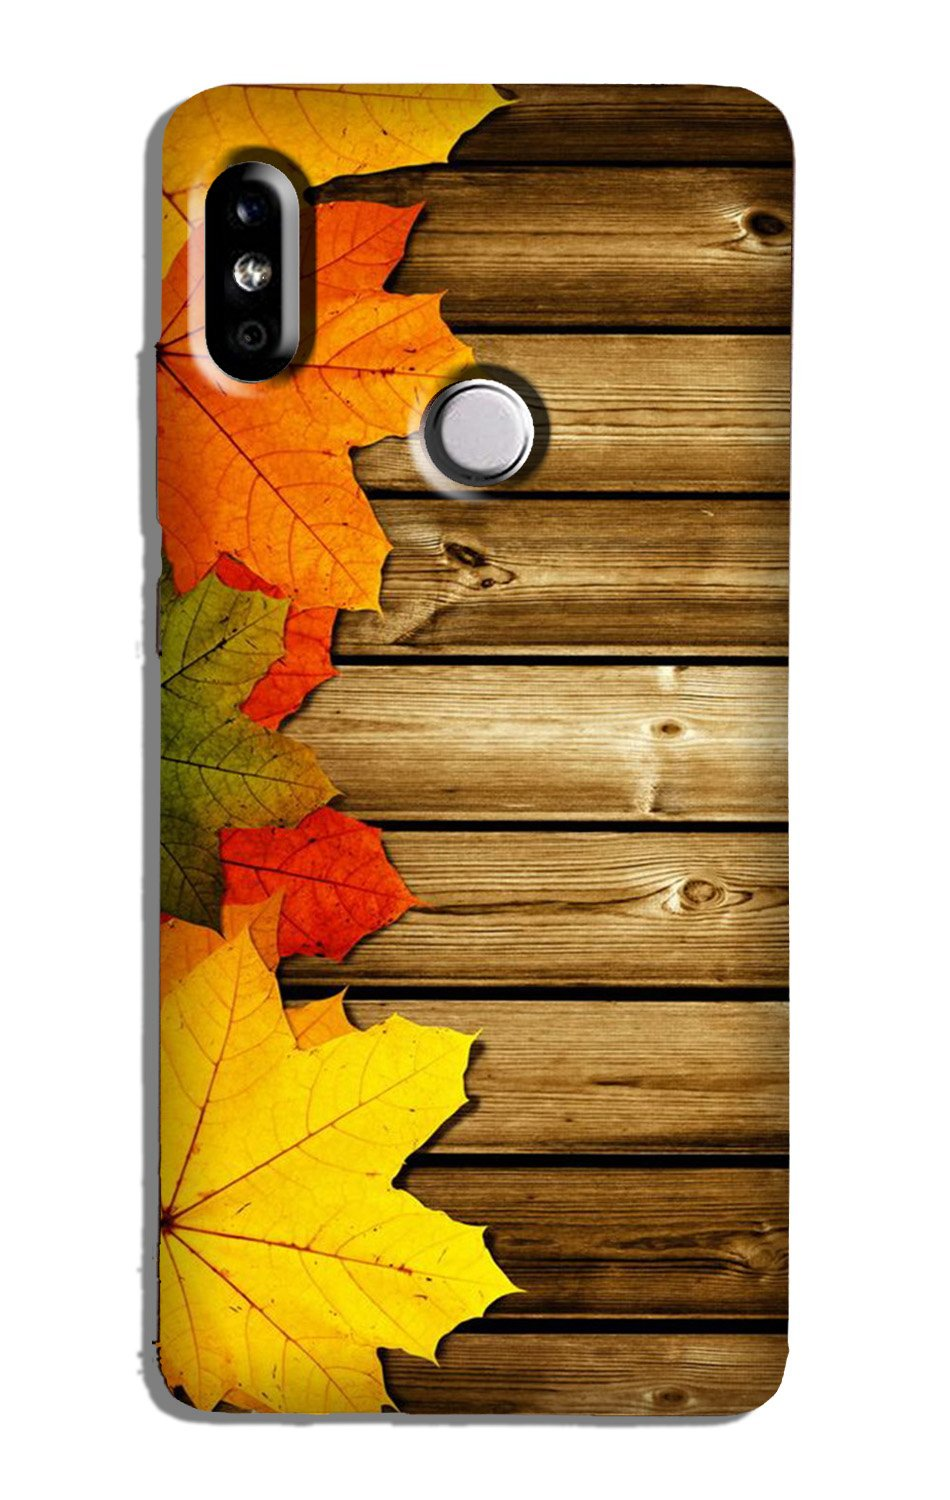 Wooden look Case for Redmi Note 5 Pro